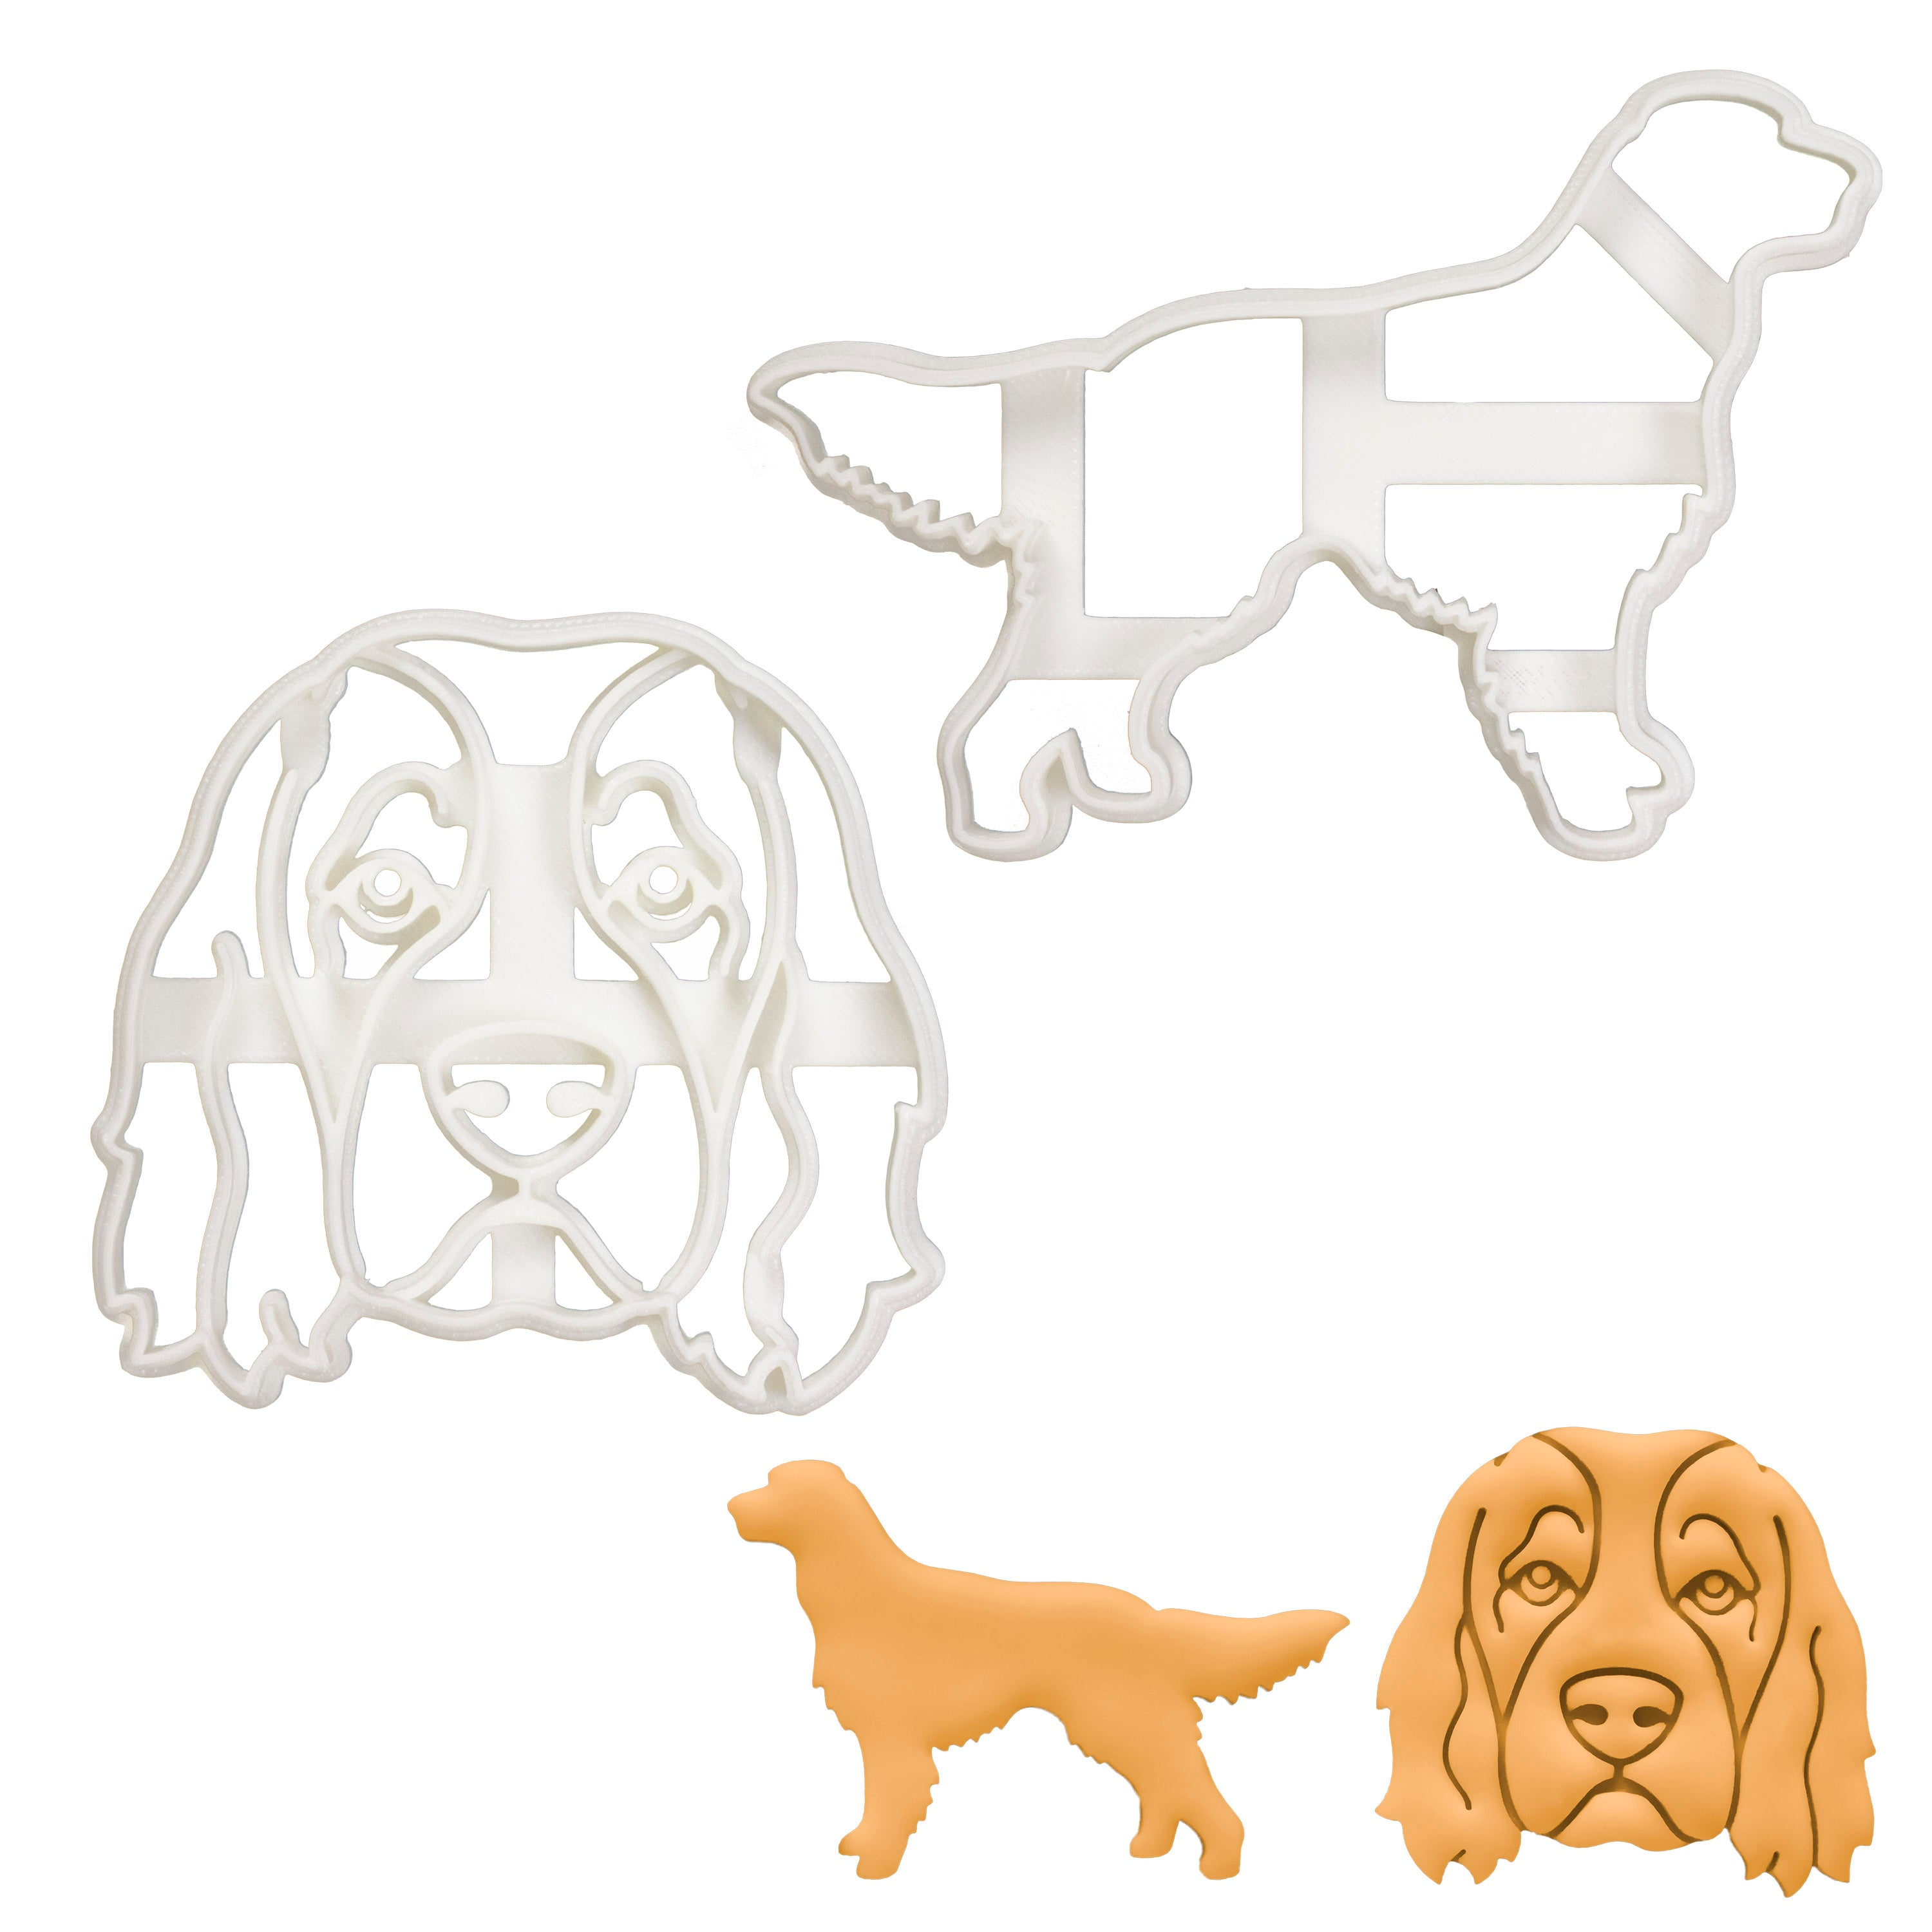 Set of 2 Irish Red and White Setter cookie cutters (Design: Outline and Face)